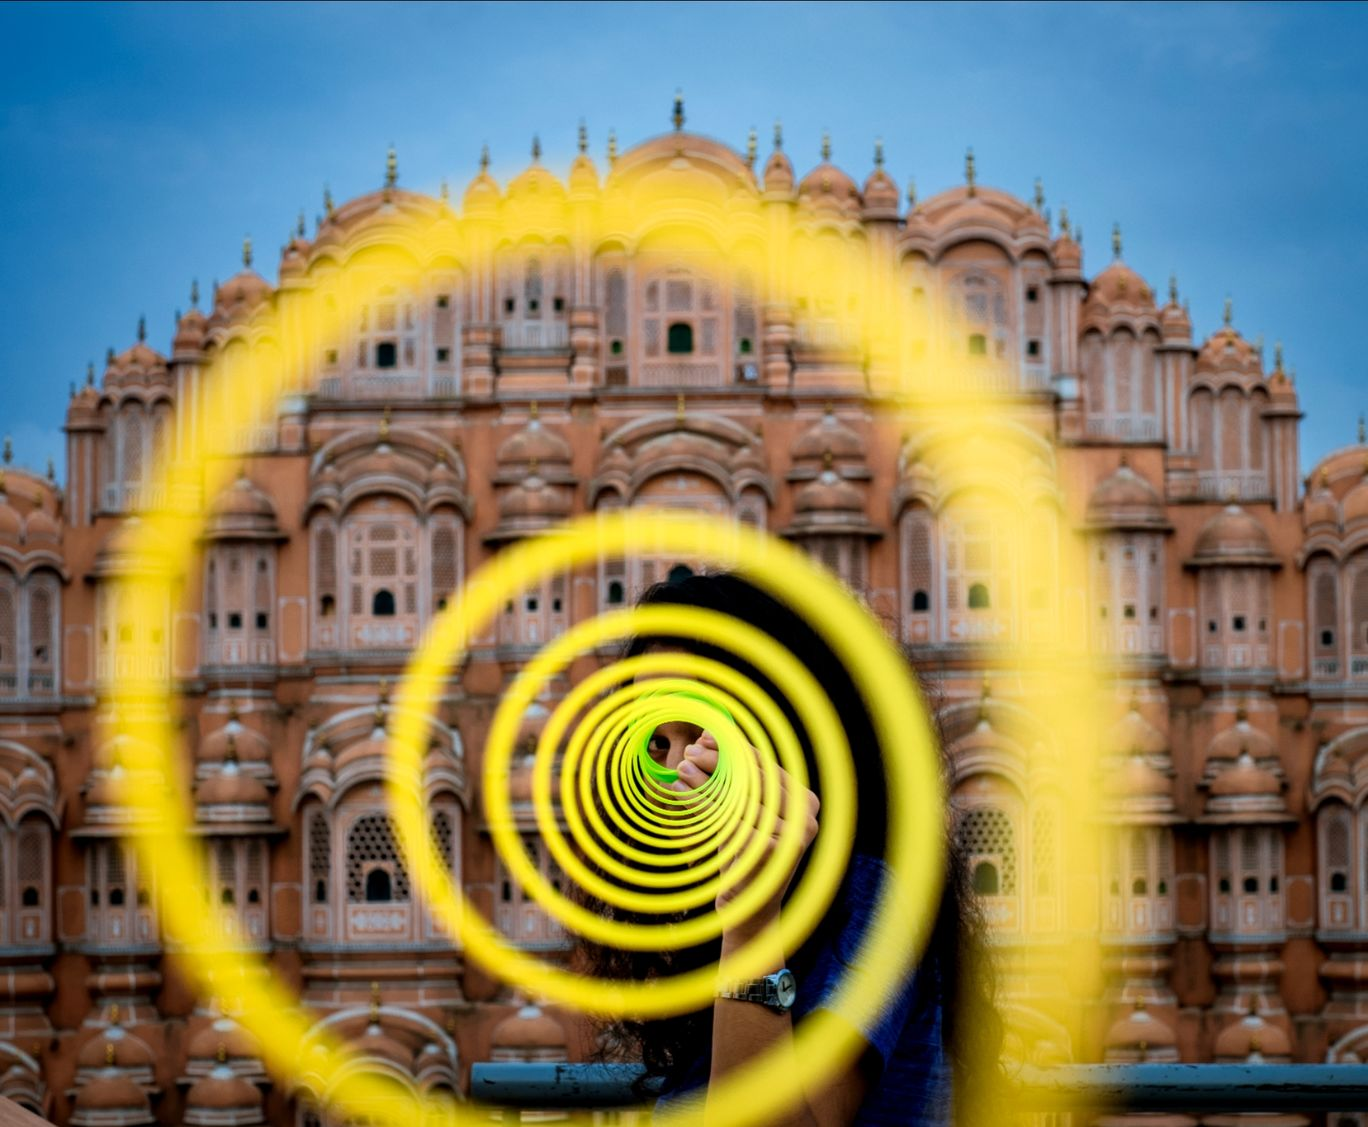 Photo of Hawa Mahal - Palace of Wind By Aarti Vijay Photography